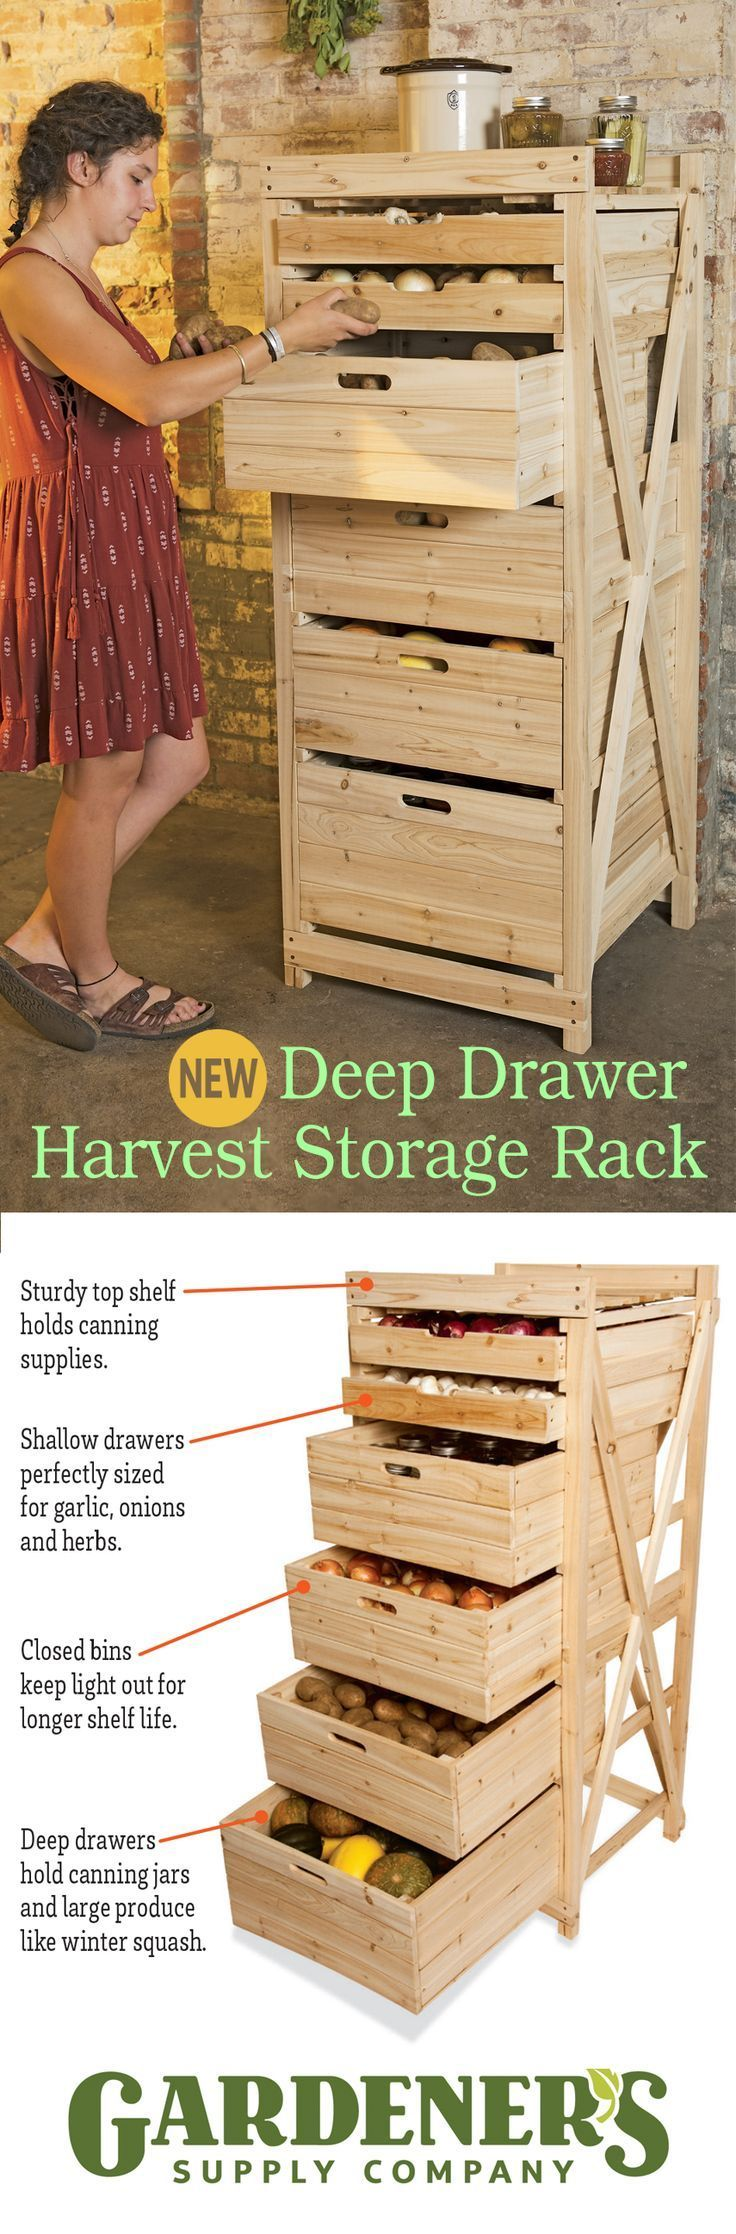 Deep Drawer Harvest Storage Rack. This spacious and space-saving rack holds a pantry's worth of produce. The deep drawers provide dark storage for potatoes and onions, as well as canning jars. Two sha